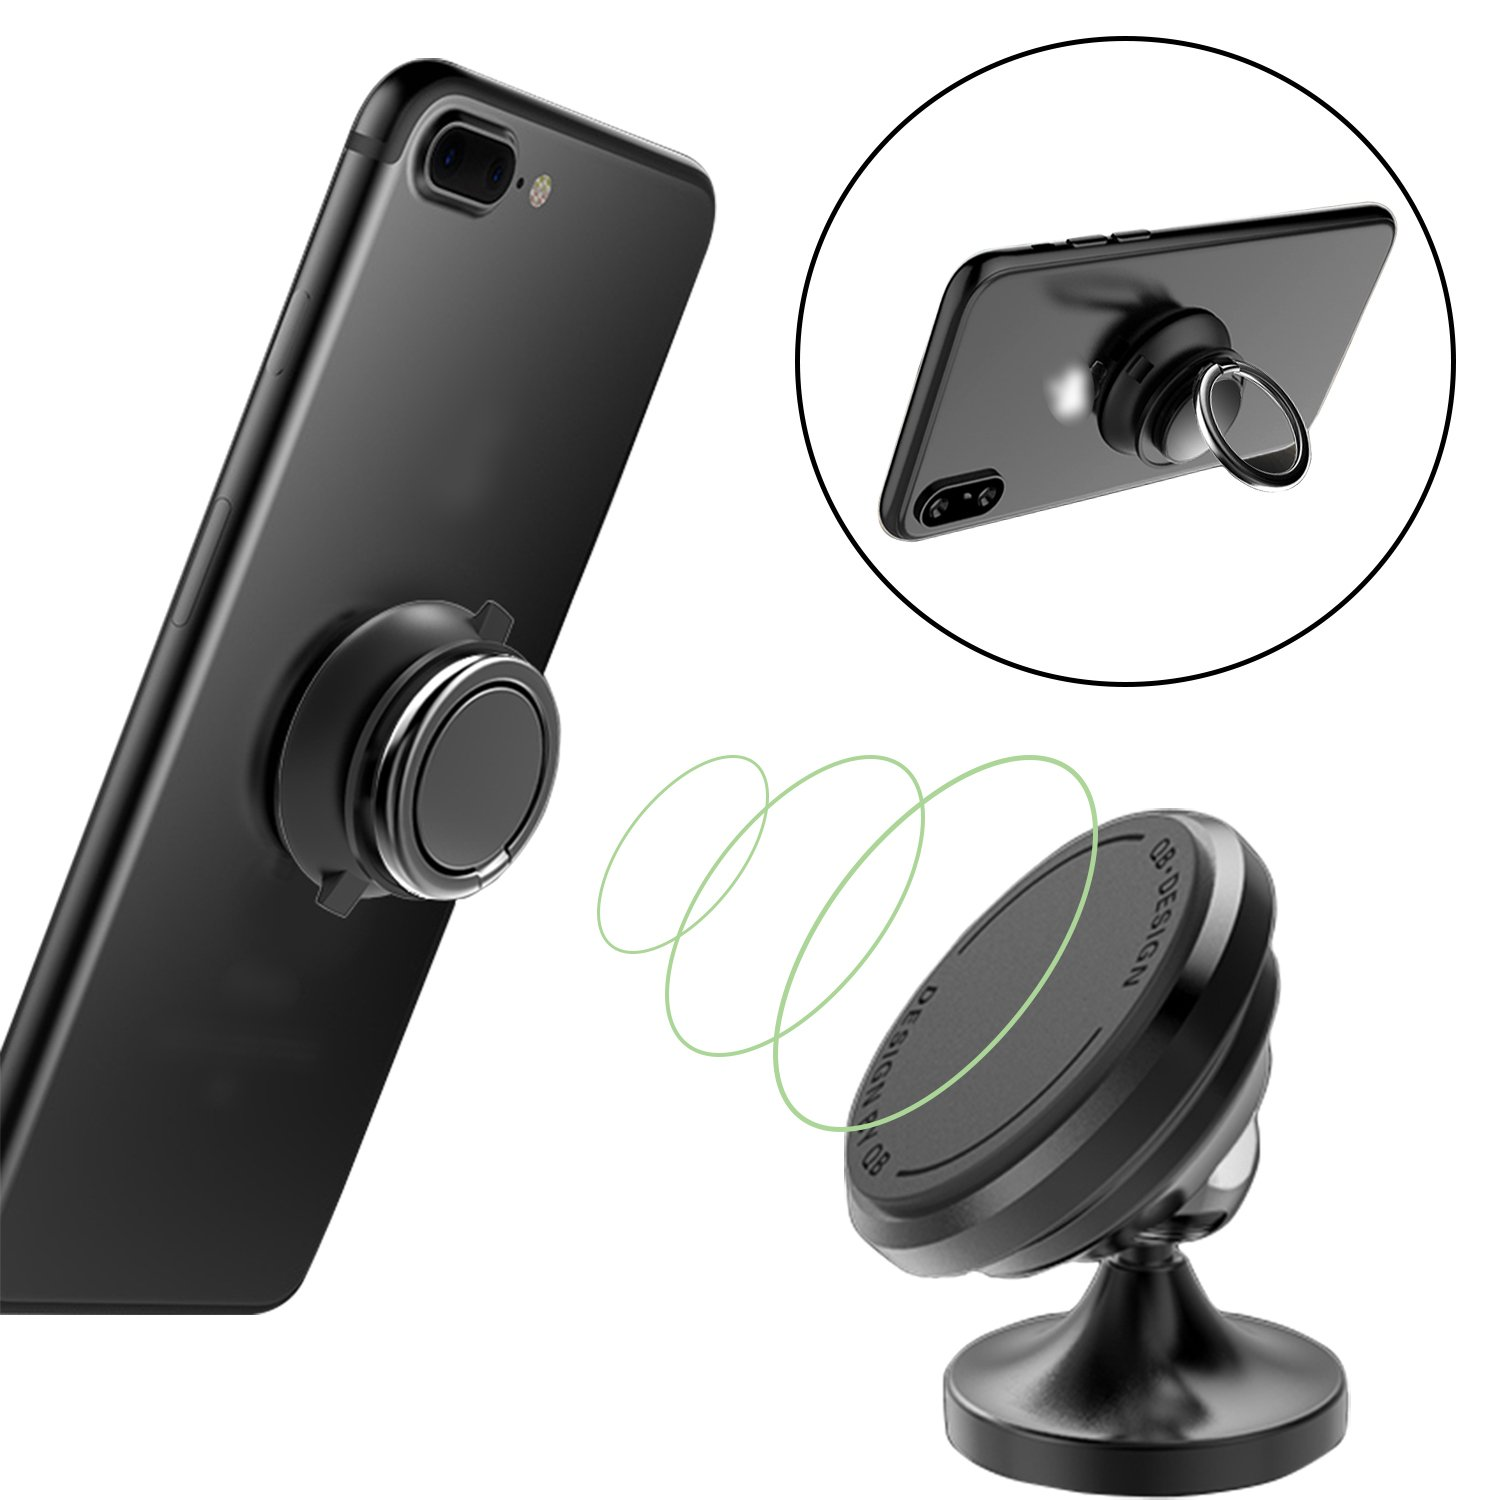 LG iPhone 7//7 Plus Universal Car Dashboard Mount Stands for iPhone X,iPhone 8//8 Plus HTC JIWINNER 4351569279 Magnetic Car Mount Holder with Phone Ring Holder ZTE Samsung Galaxy S8//S8+ BLACK